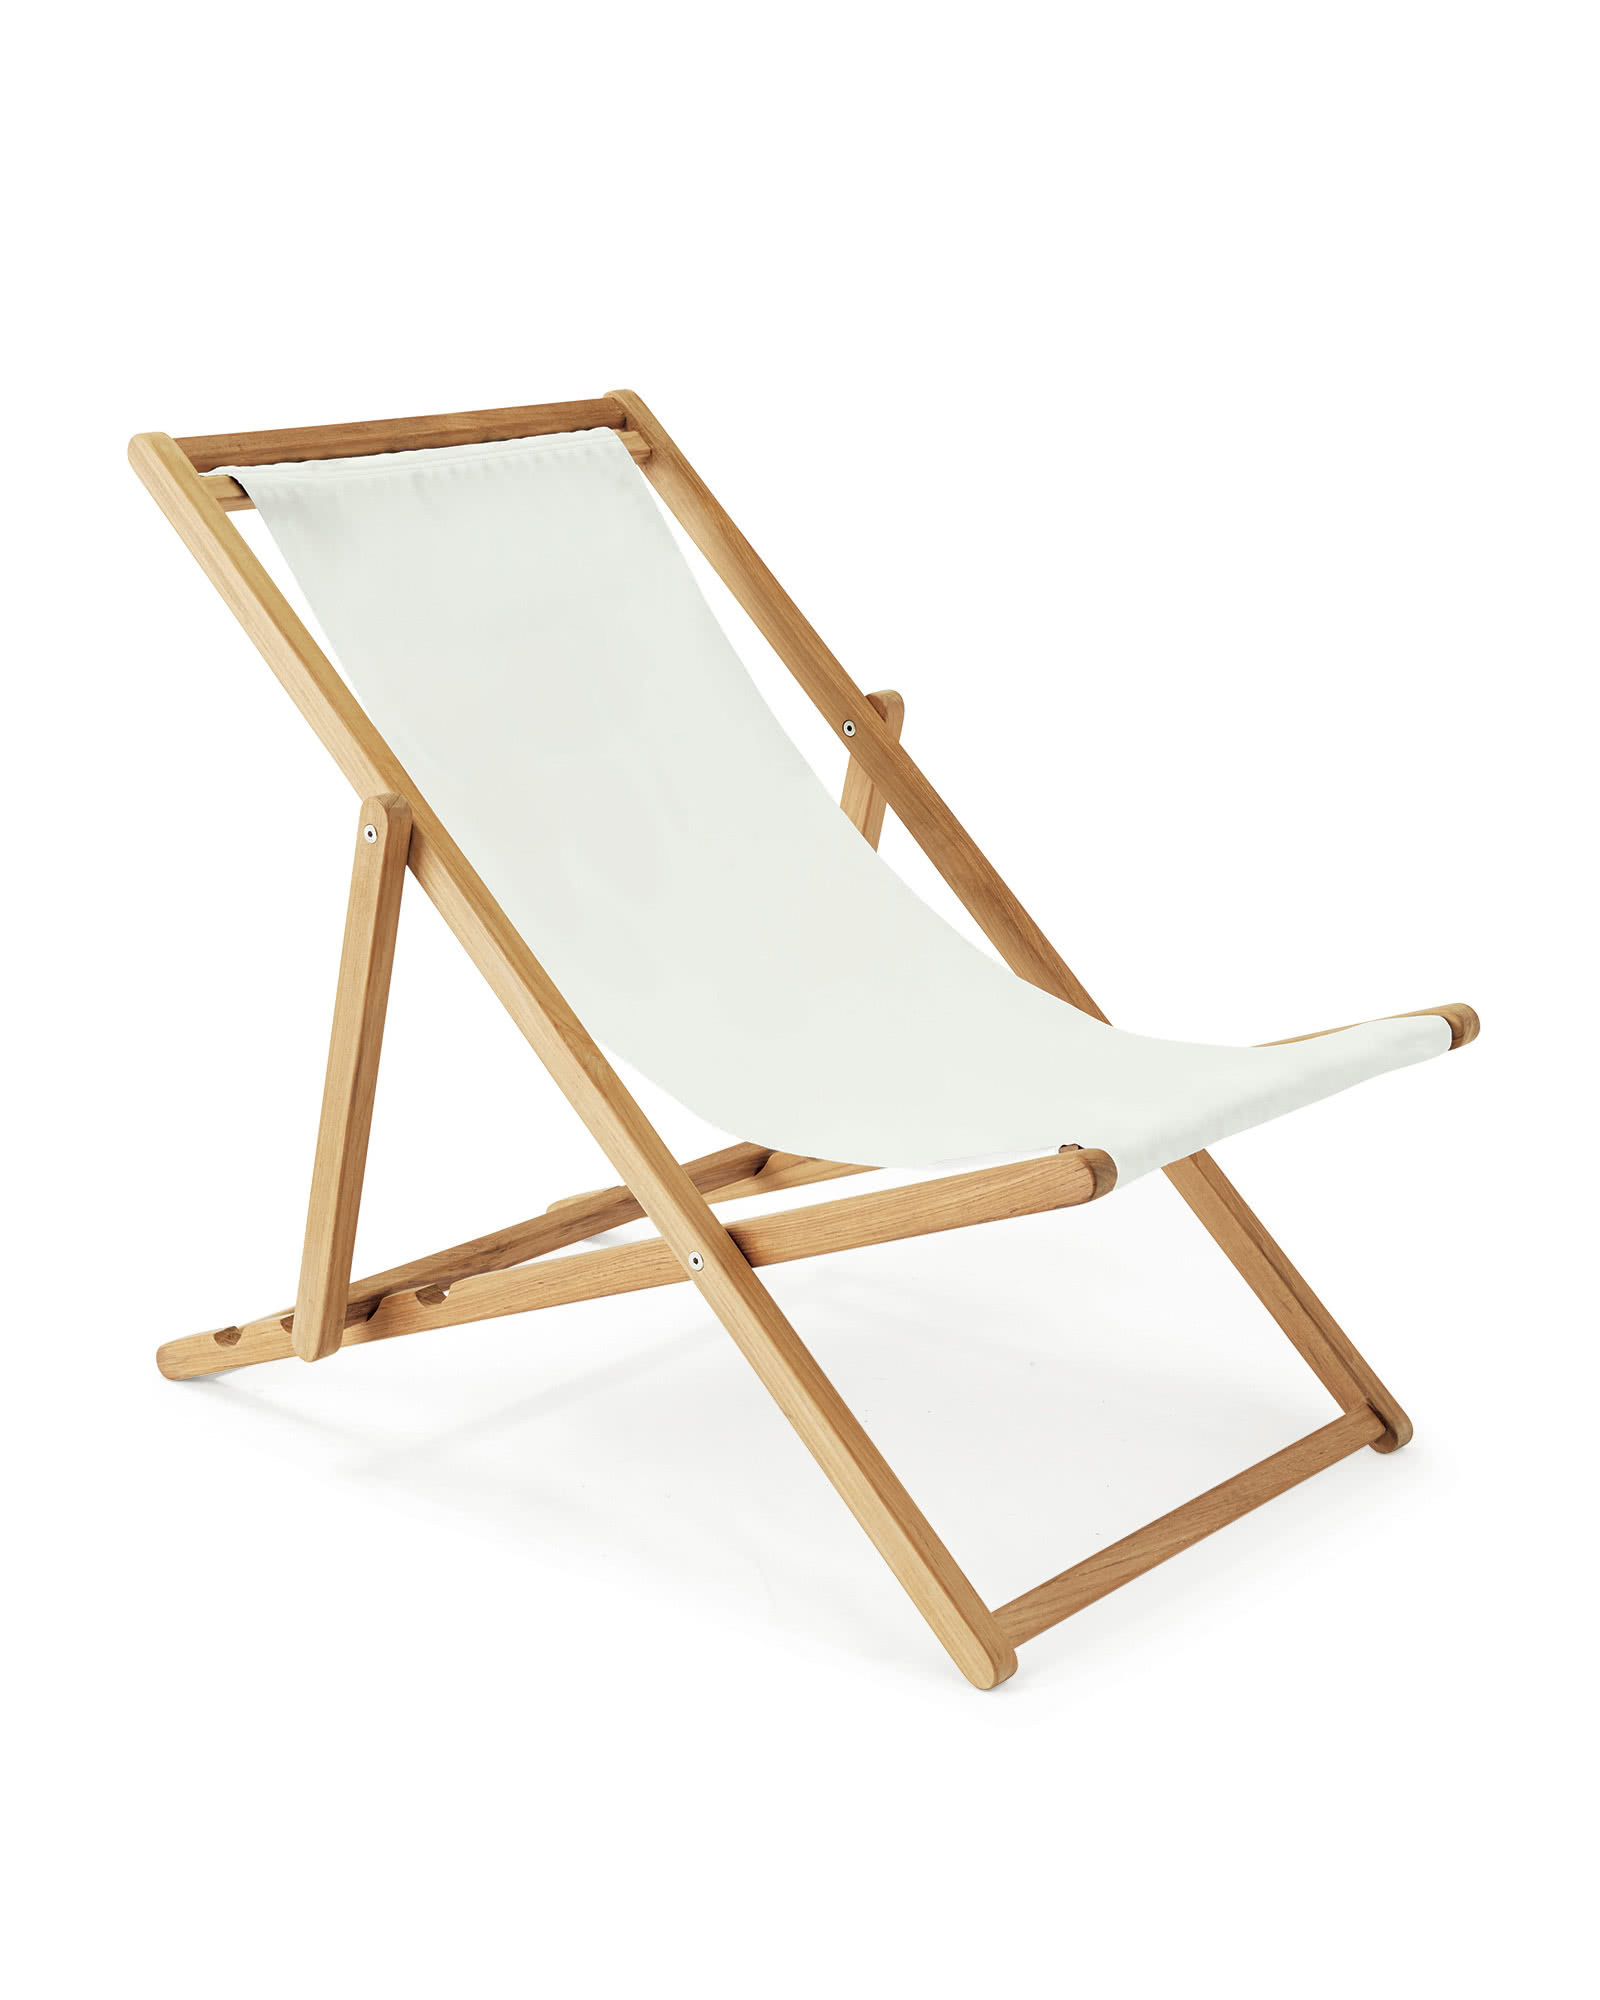 Fabric Only - Teak Sling Chair, Sunbrella White